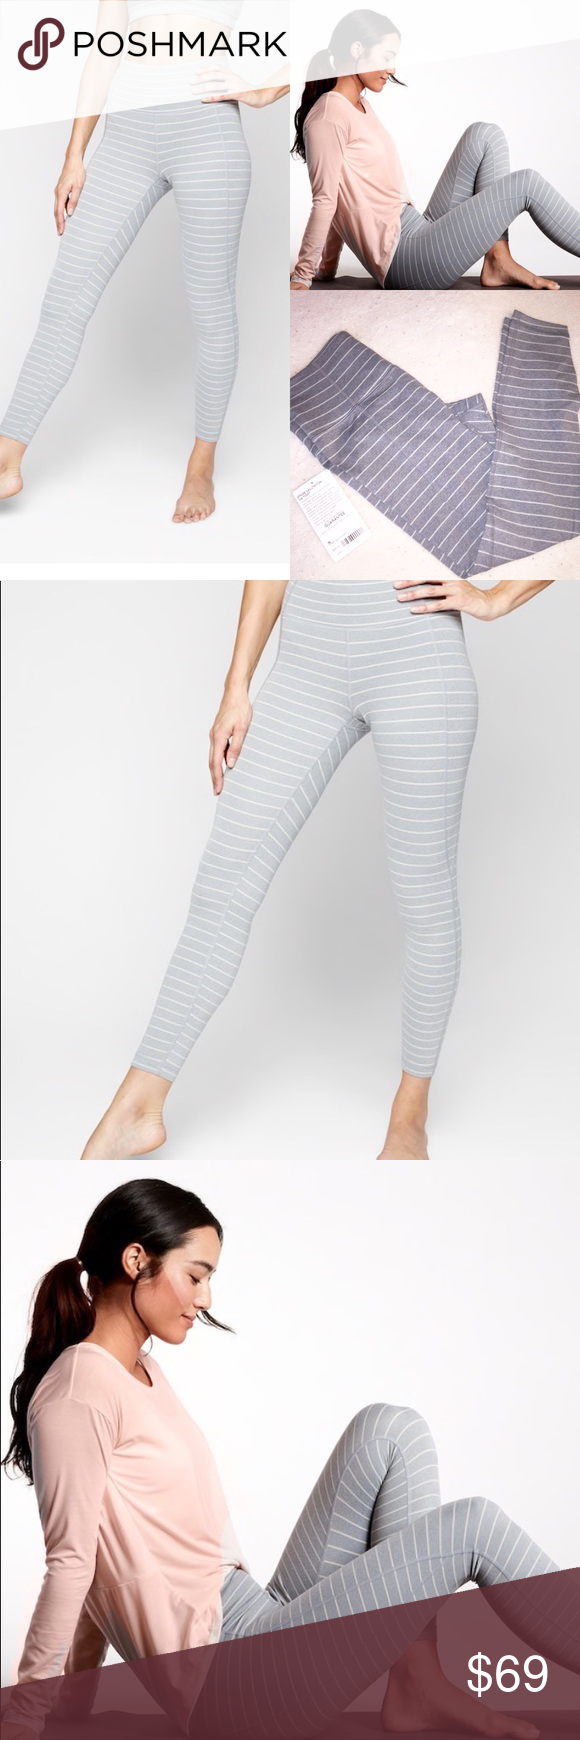 58e31626afca7 Athleta Stripe PowerVita Salutation 7/8 Tights PowerVita fabric Fitted,  High rise Fits next to skin, sits at natural waist Inseam: Re…